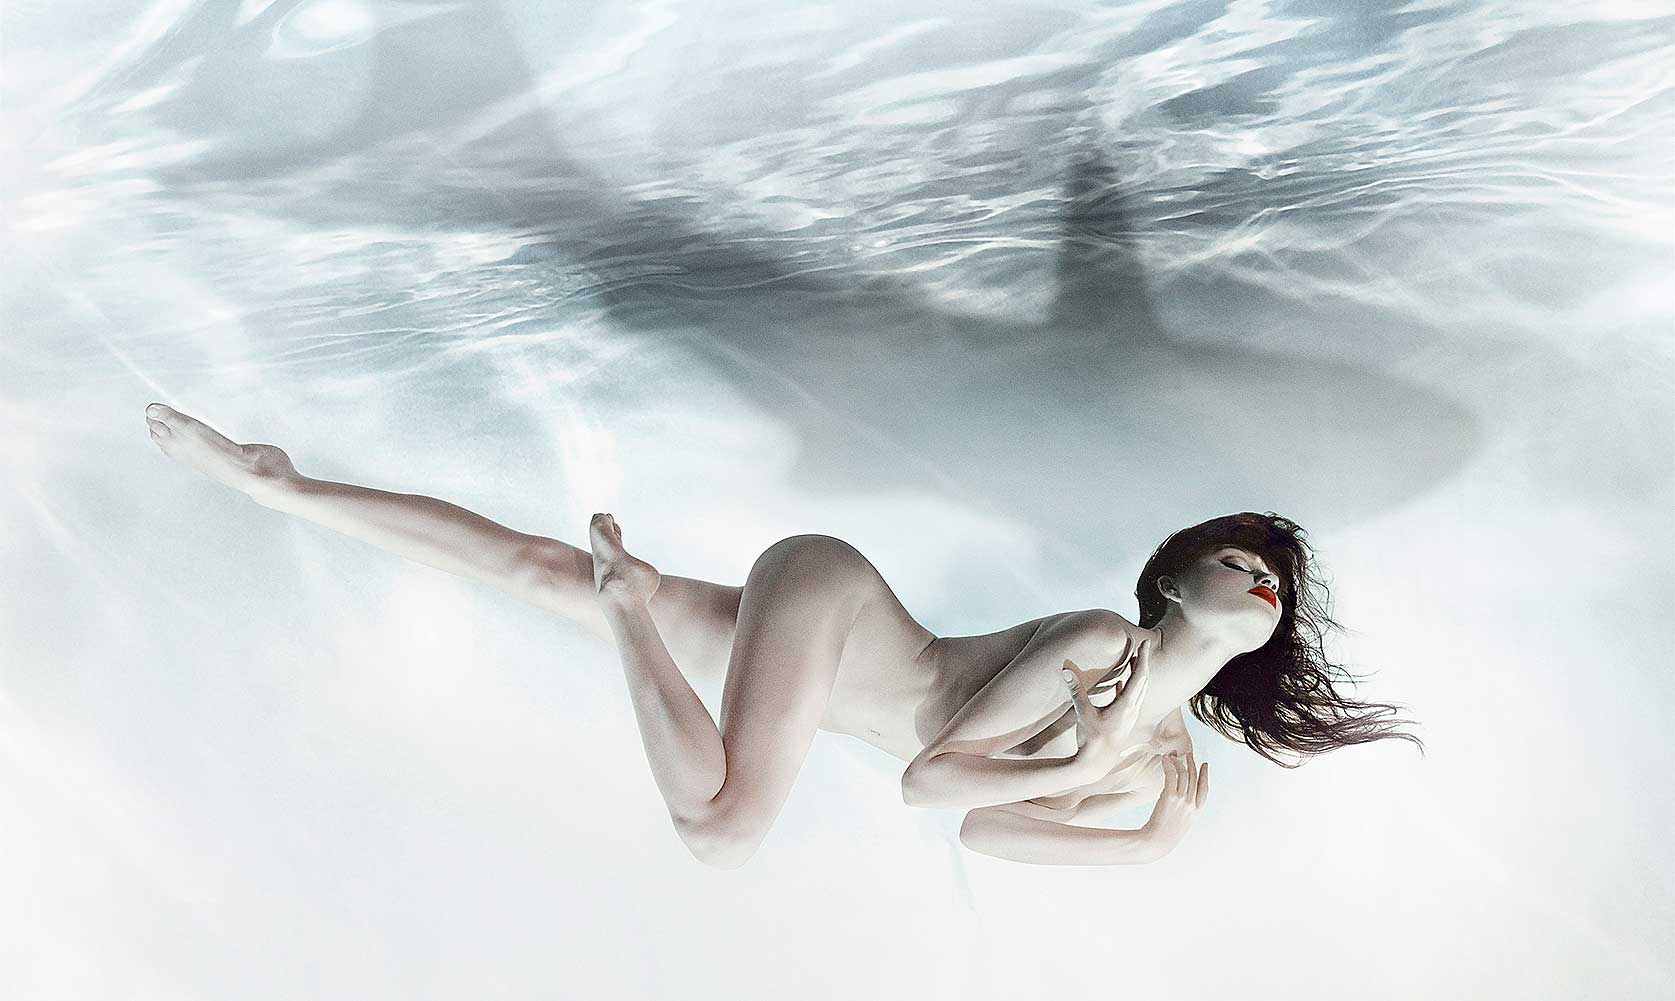 Fotografia: Underwater photography models